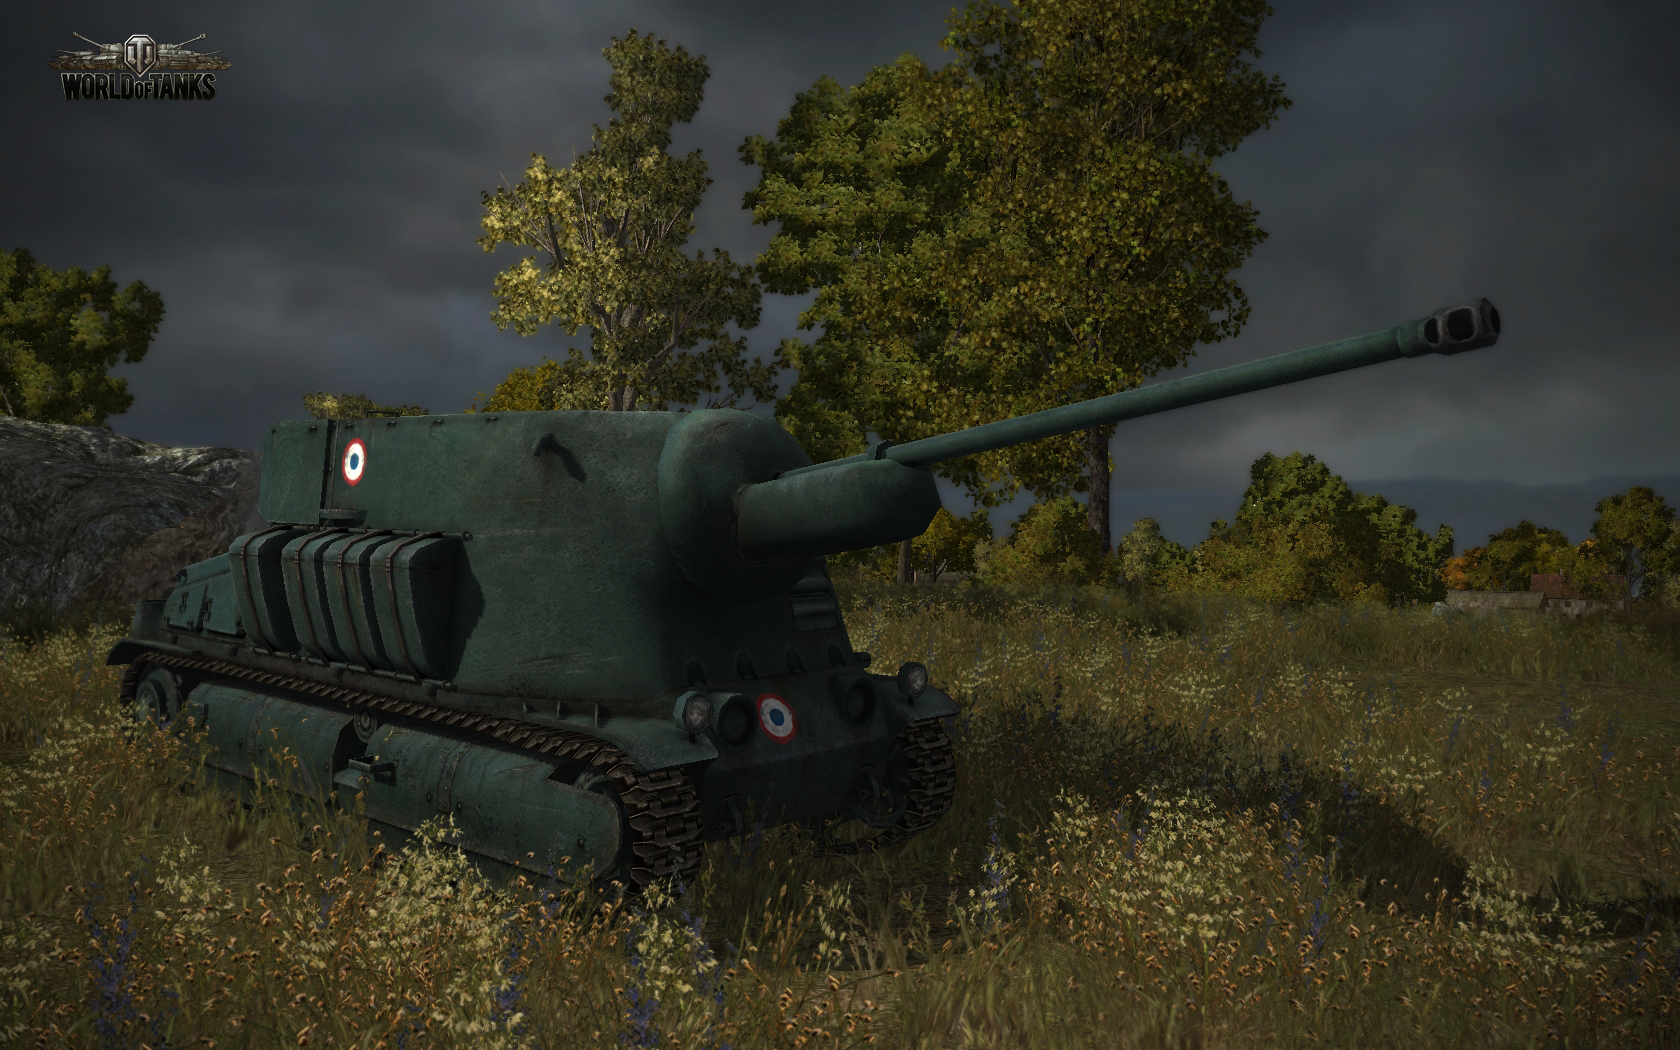 world-of-tanks_eu_-_aktualnosc_424_2.jpg